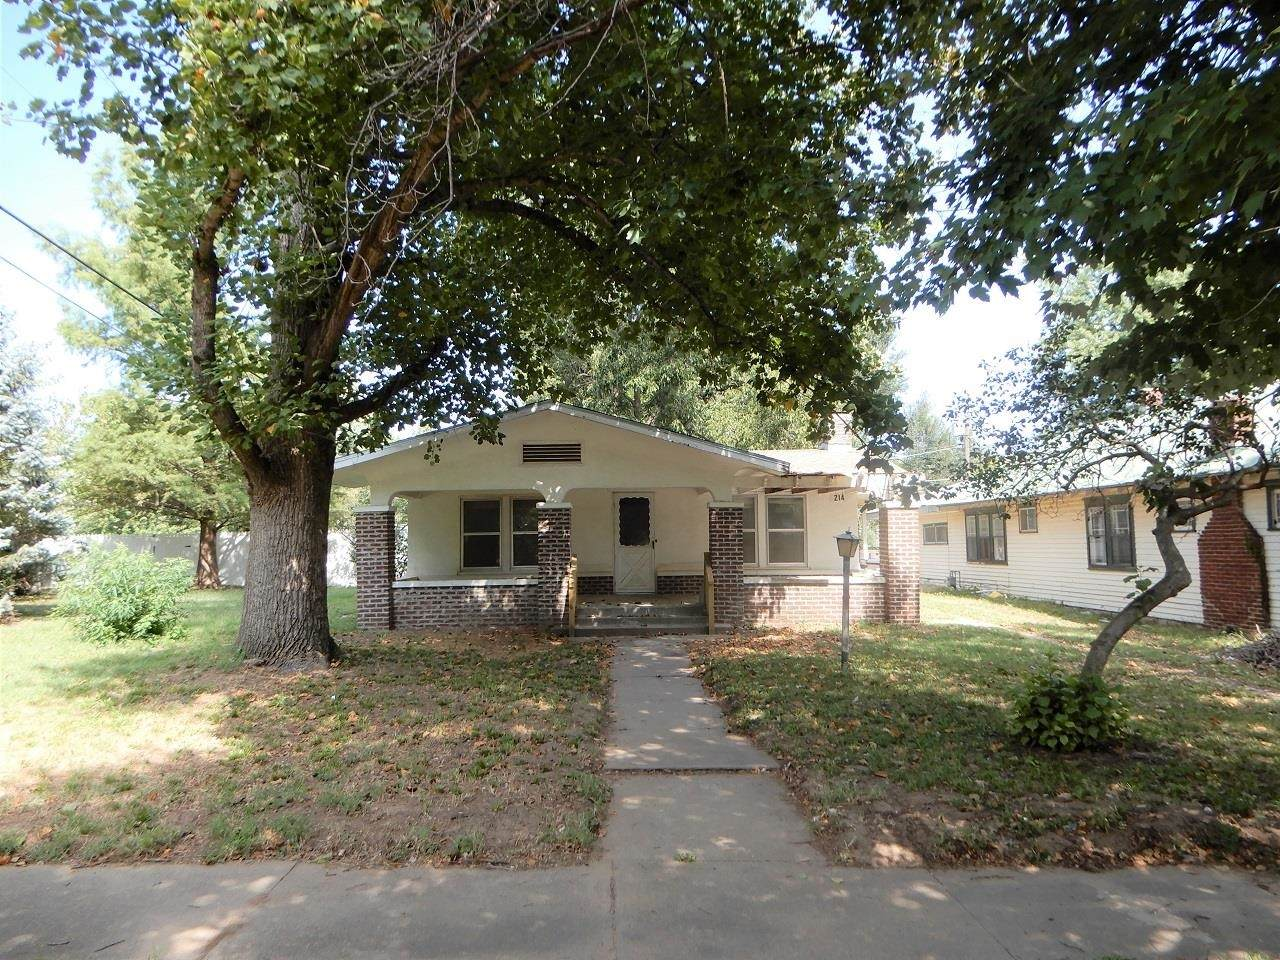 214 Linden Ave - Photo 1